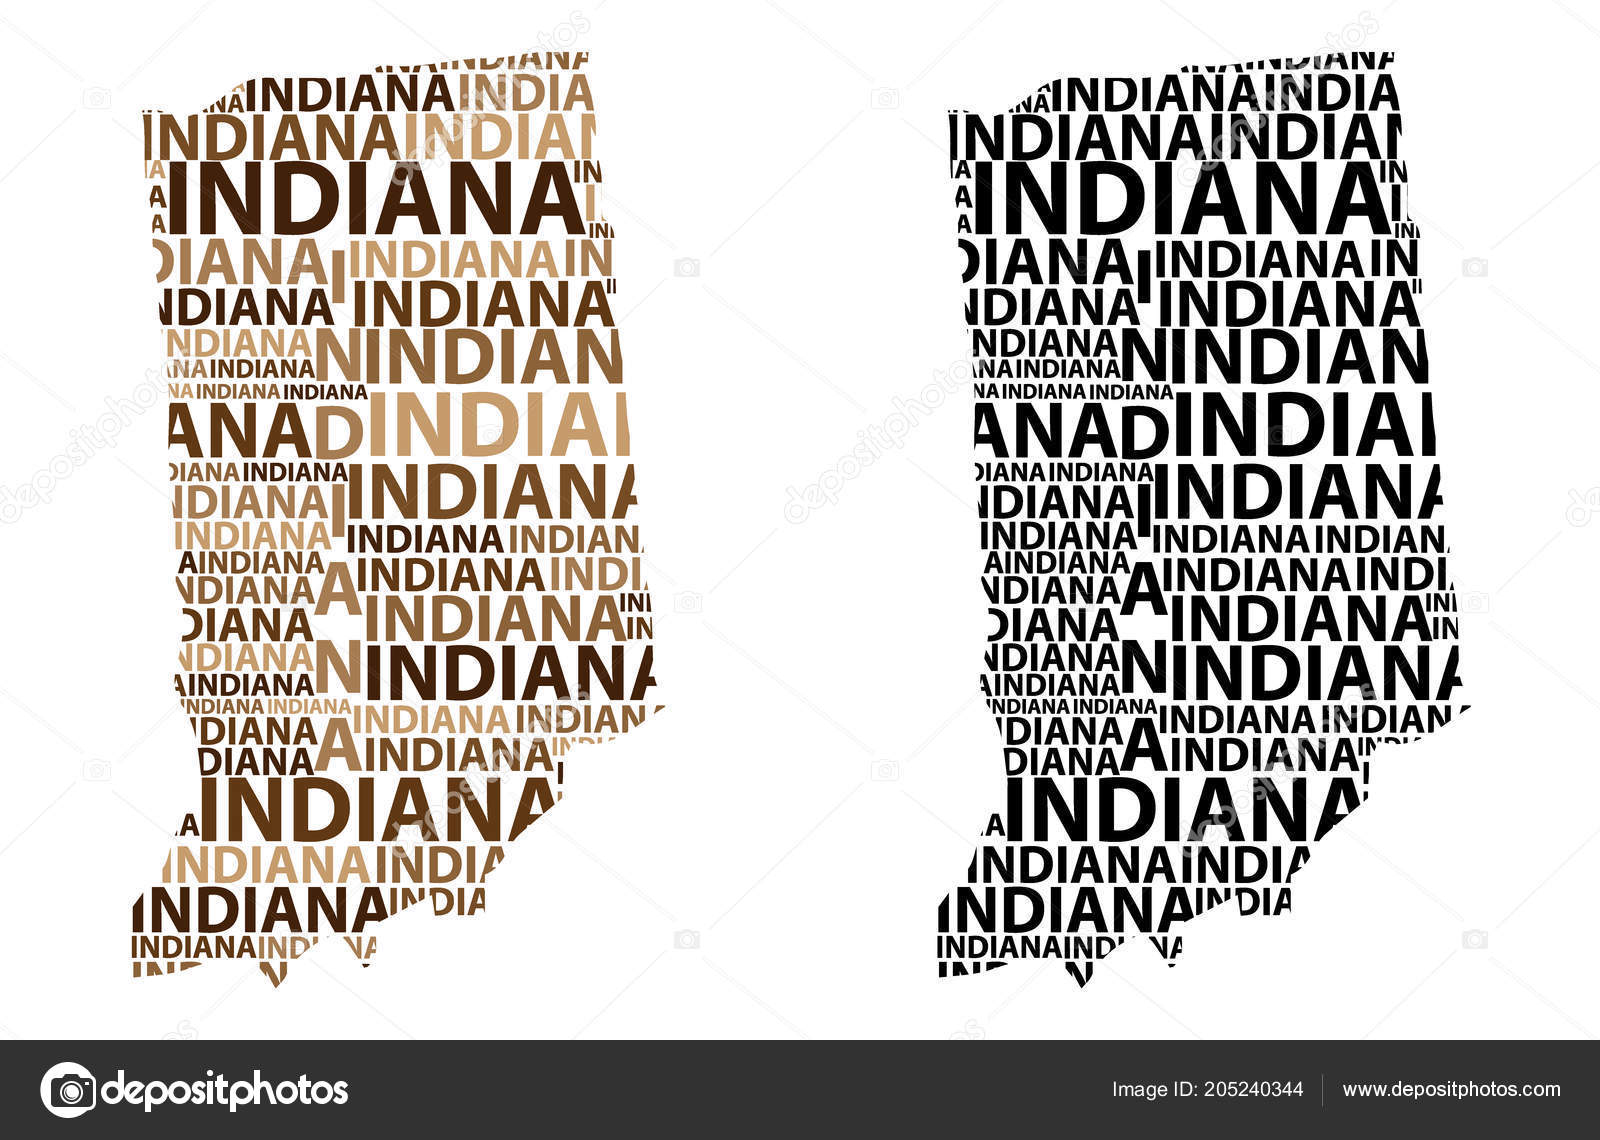 Sketch Indiana United States America Letter Text Map Indiana ... on map of indiana and wisconsin, map of indiana and tennessee, map of indiana and farmland, map of indiana and chicago, map of indiana and towns,